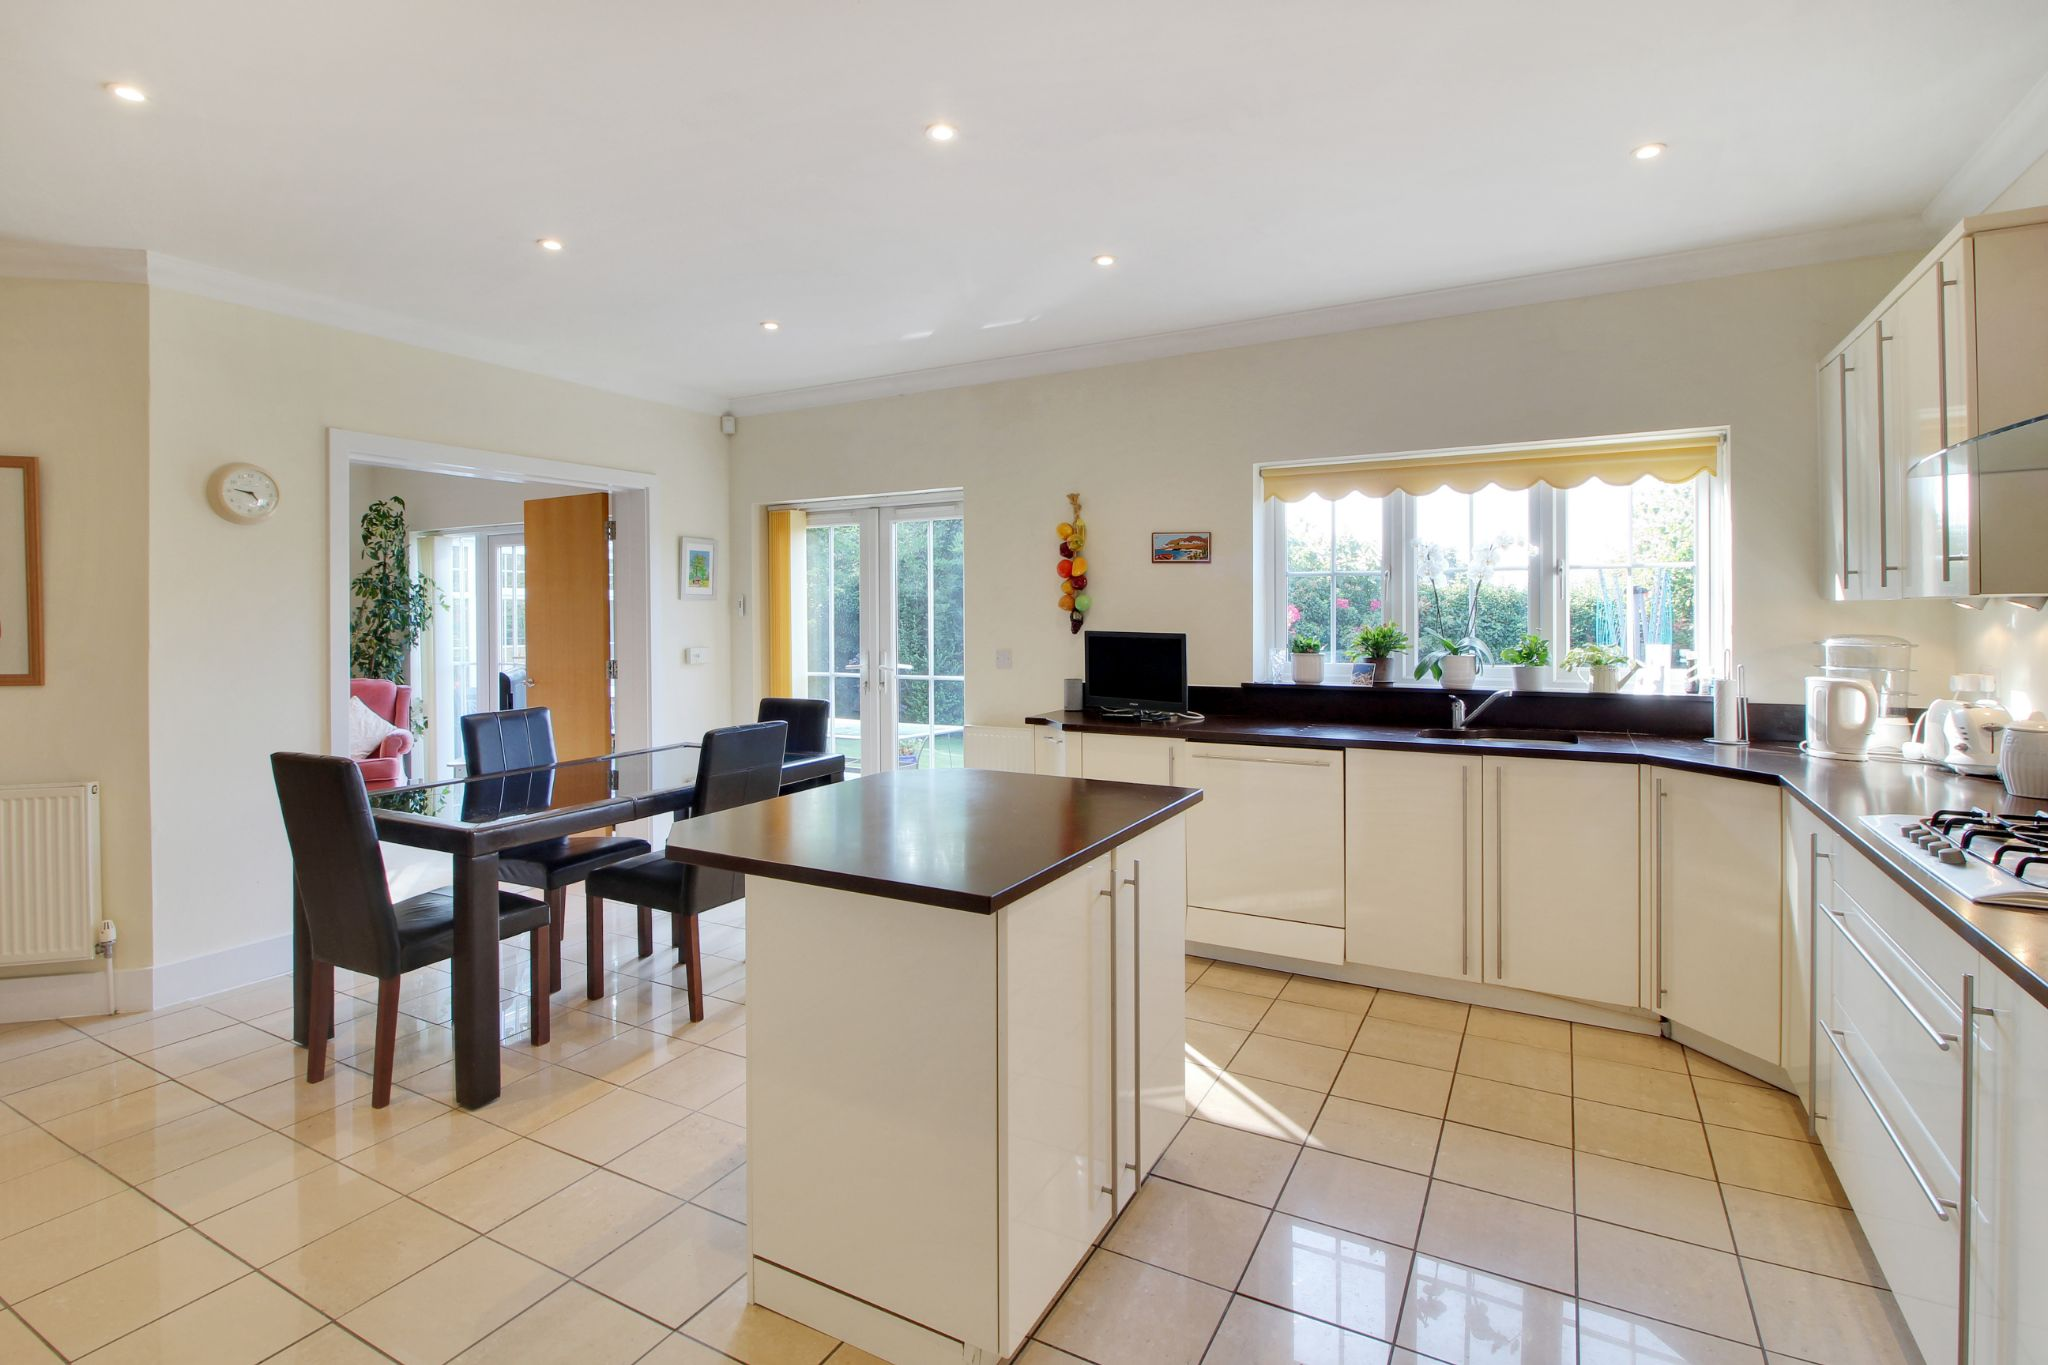 5 bedroom detached house Sold in Sevenoaks - Photograph 2